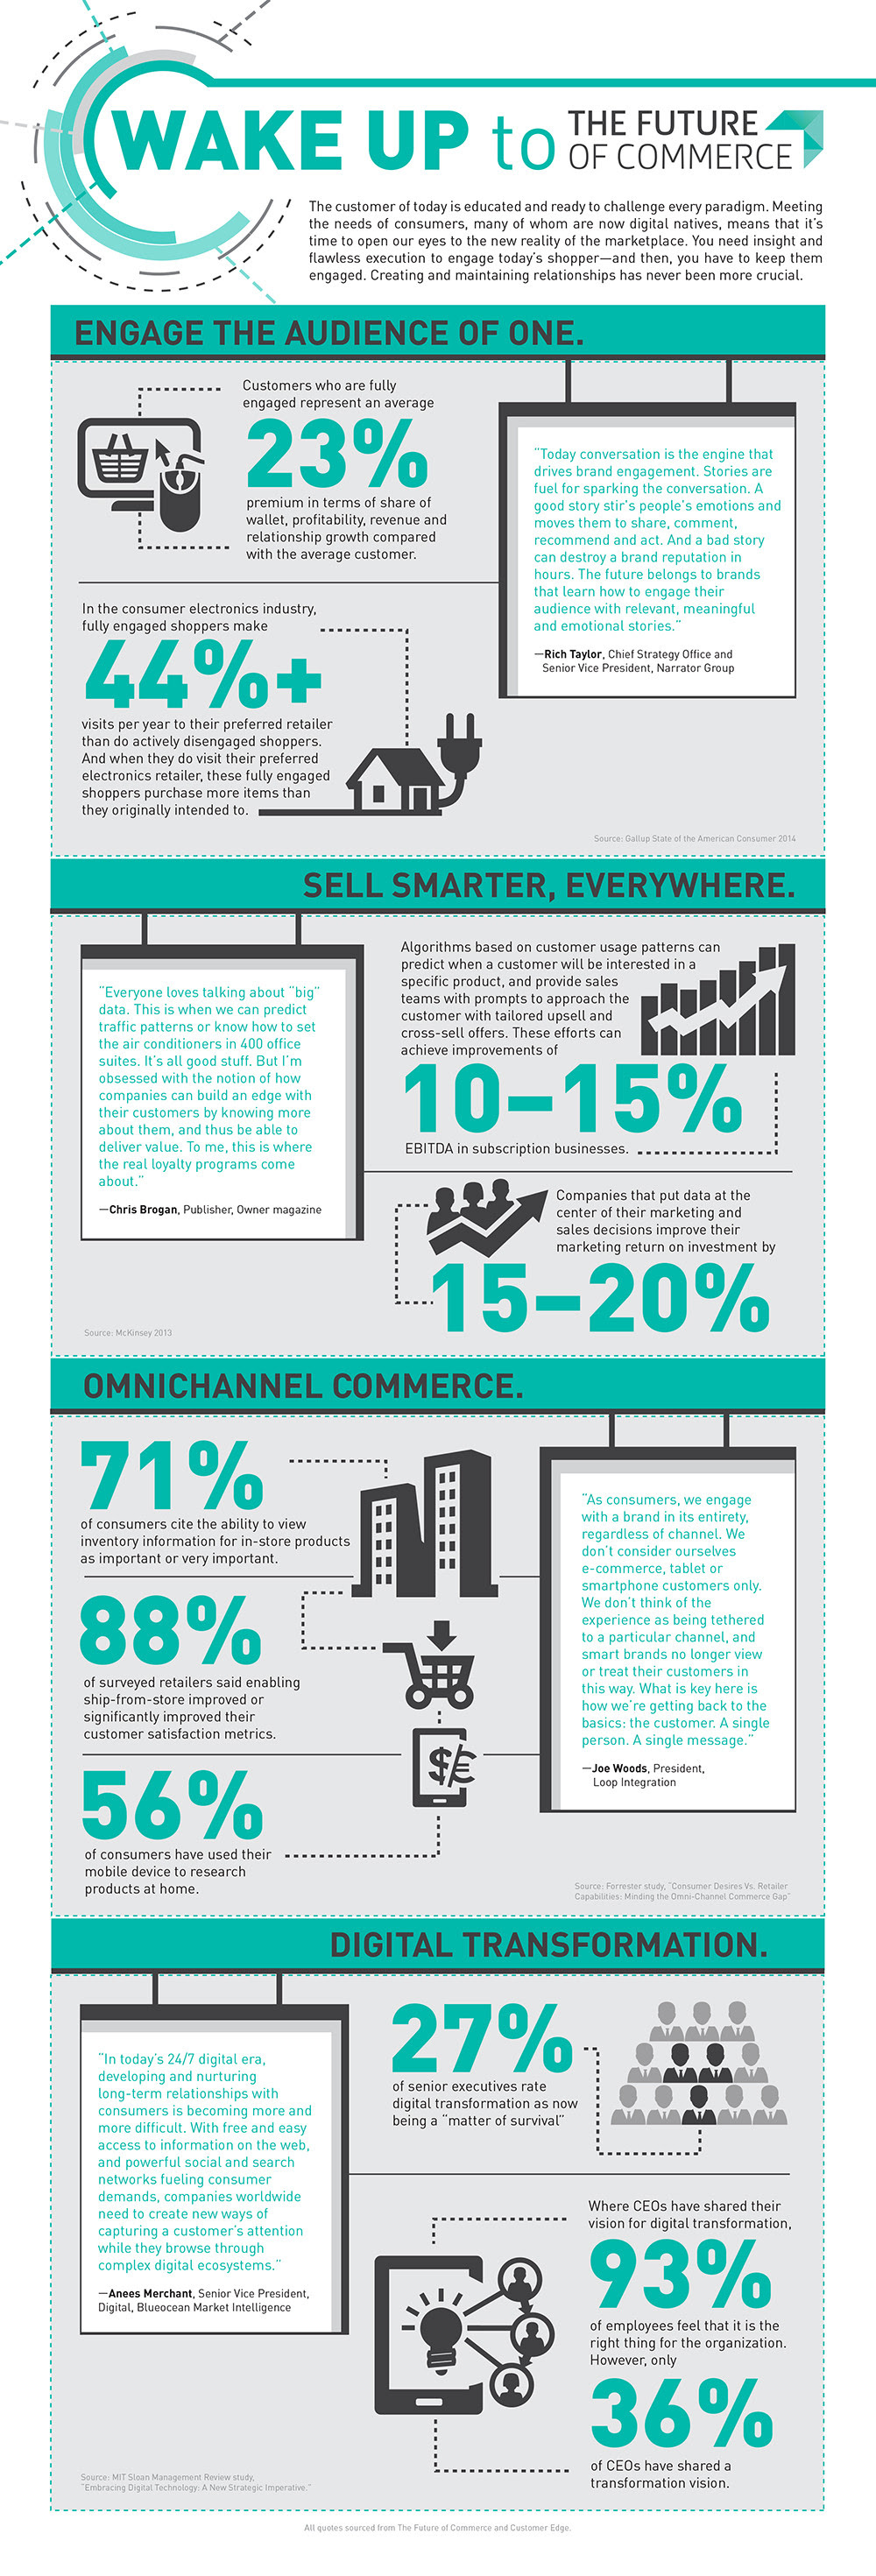 Infographic: Wake Up to the Future of Commerce